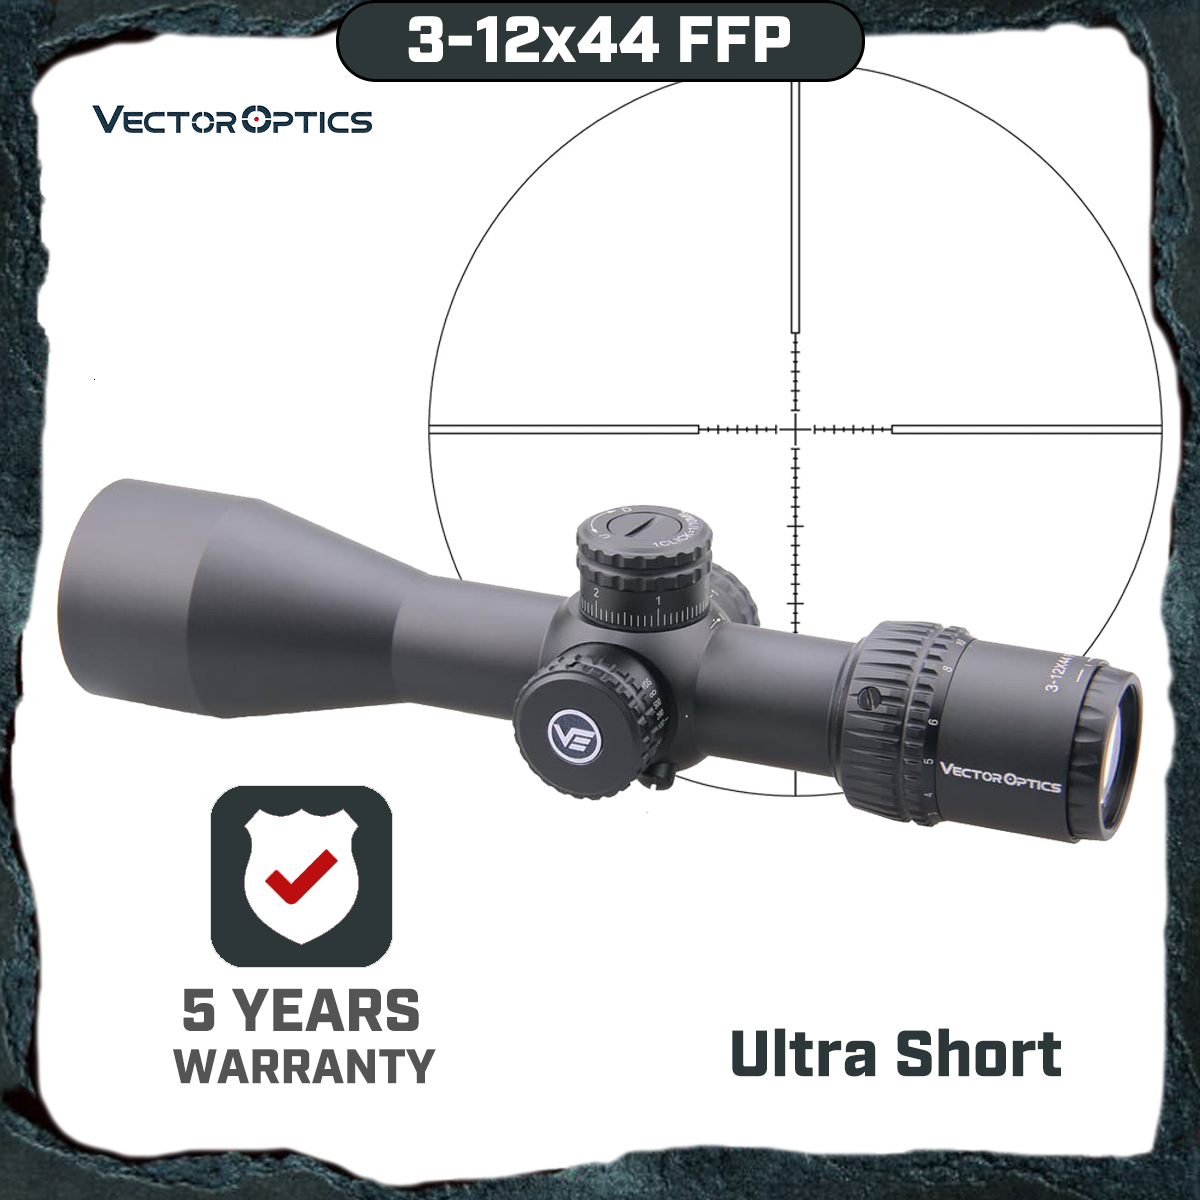 Vector Optics Veyron FFP 3-12x44 Ultra Compact Air Gun Riflescope Scope First Focal Plane .223 7.62 AR15 Air Rifle 1/10 MIL